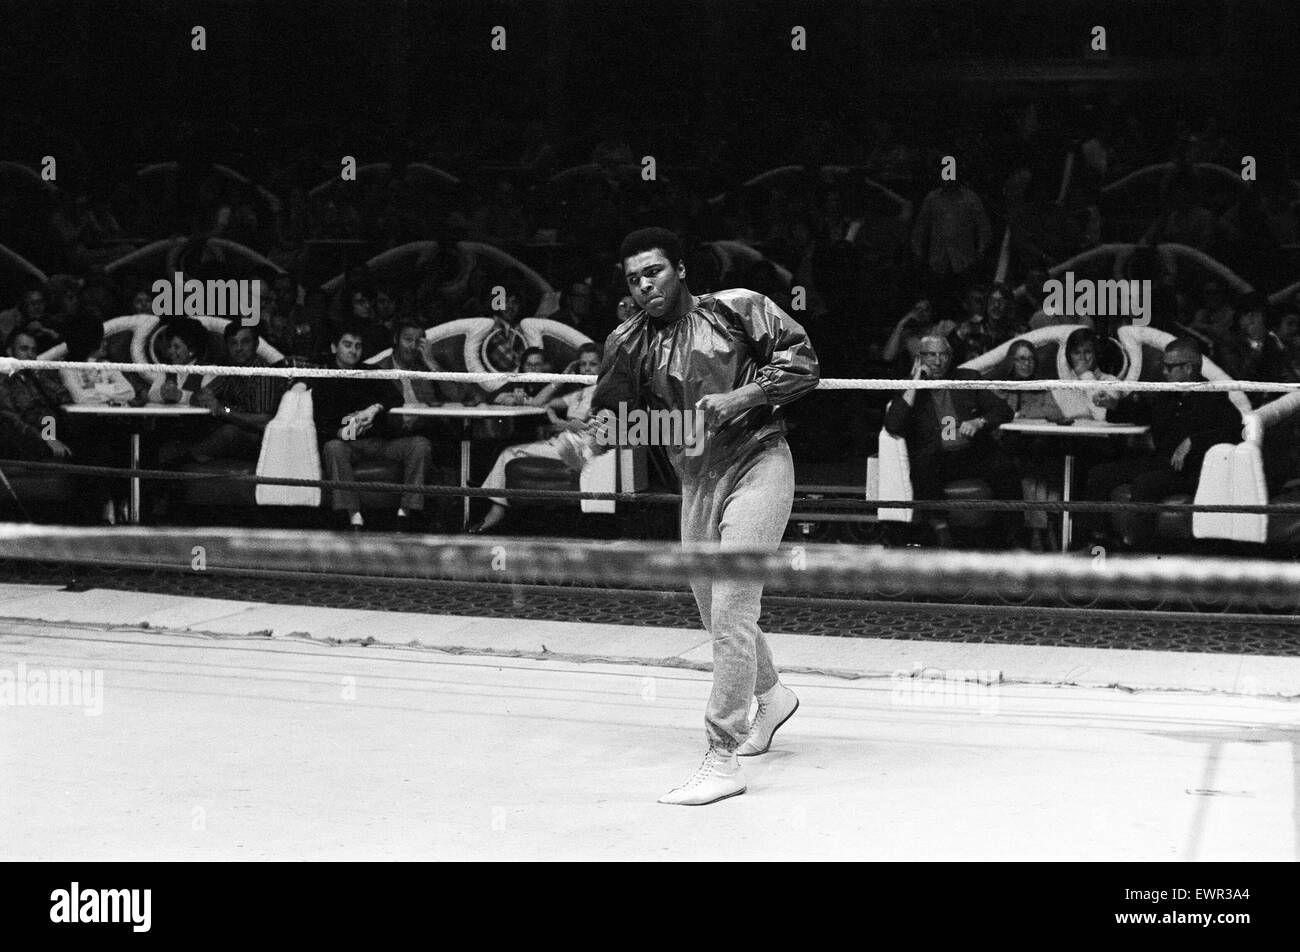 Muhammad Ali training ahead of his fight with Bugner in Las Vegas. 4th February 1973 - Stock Image